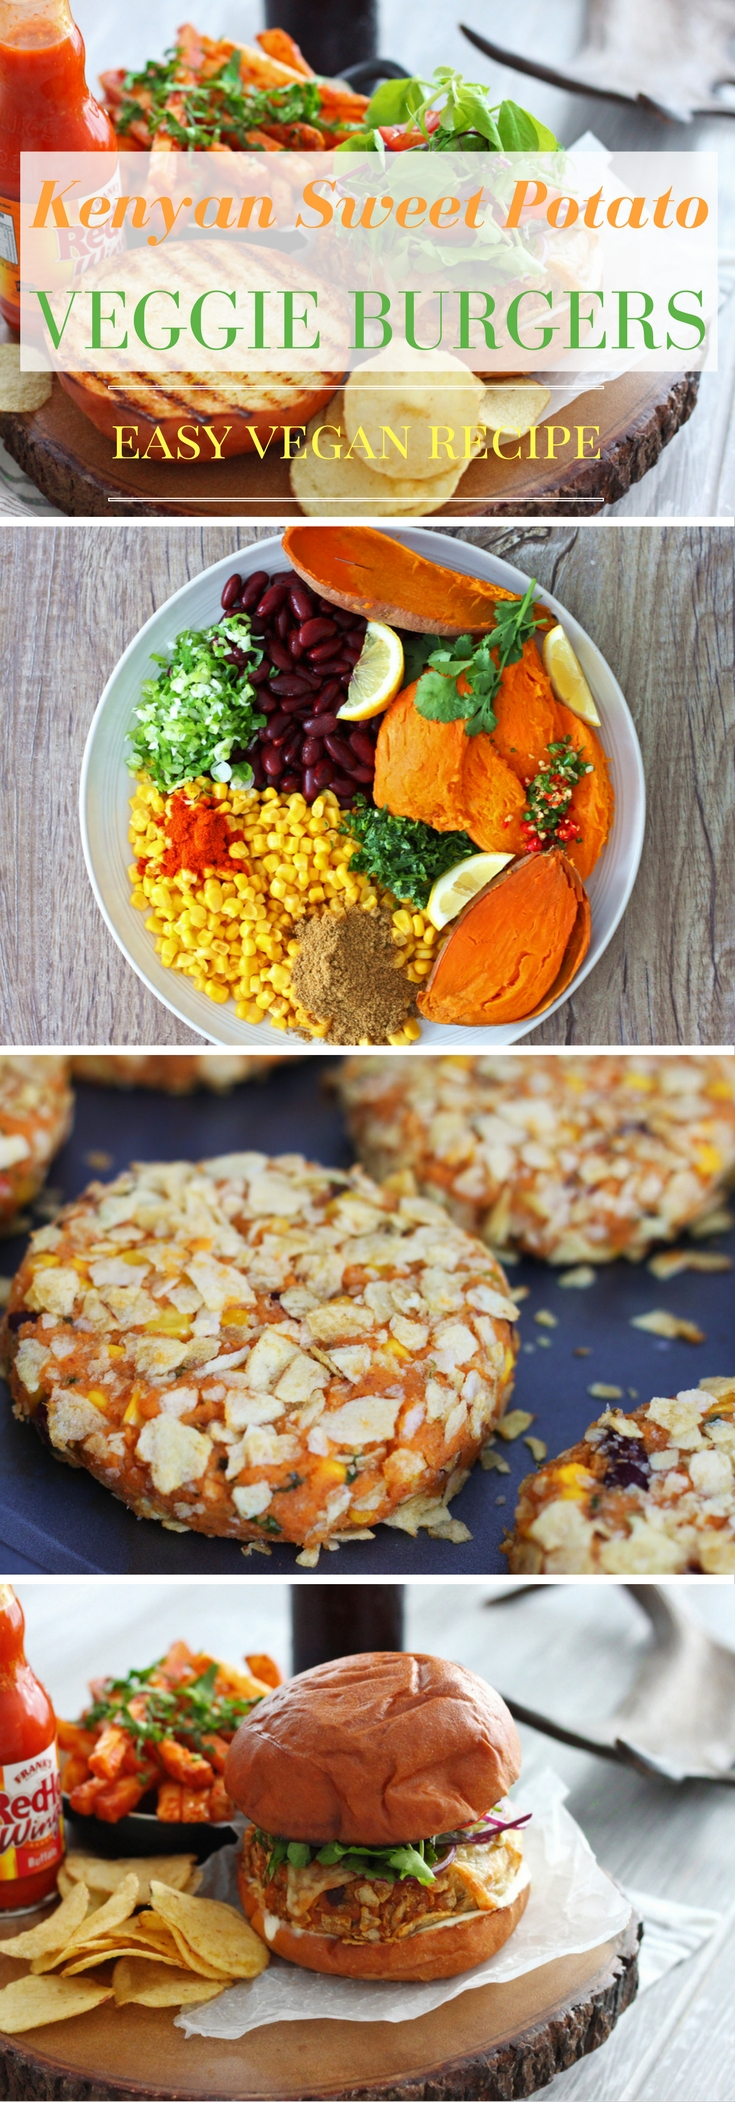 An easy vegan recipe for the most delicious veggie burgers ever.